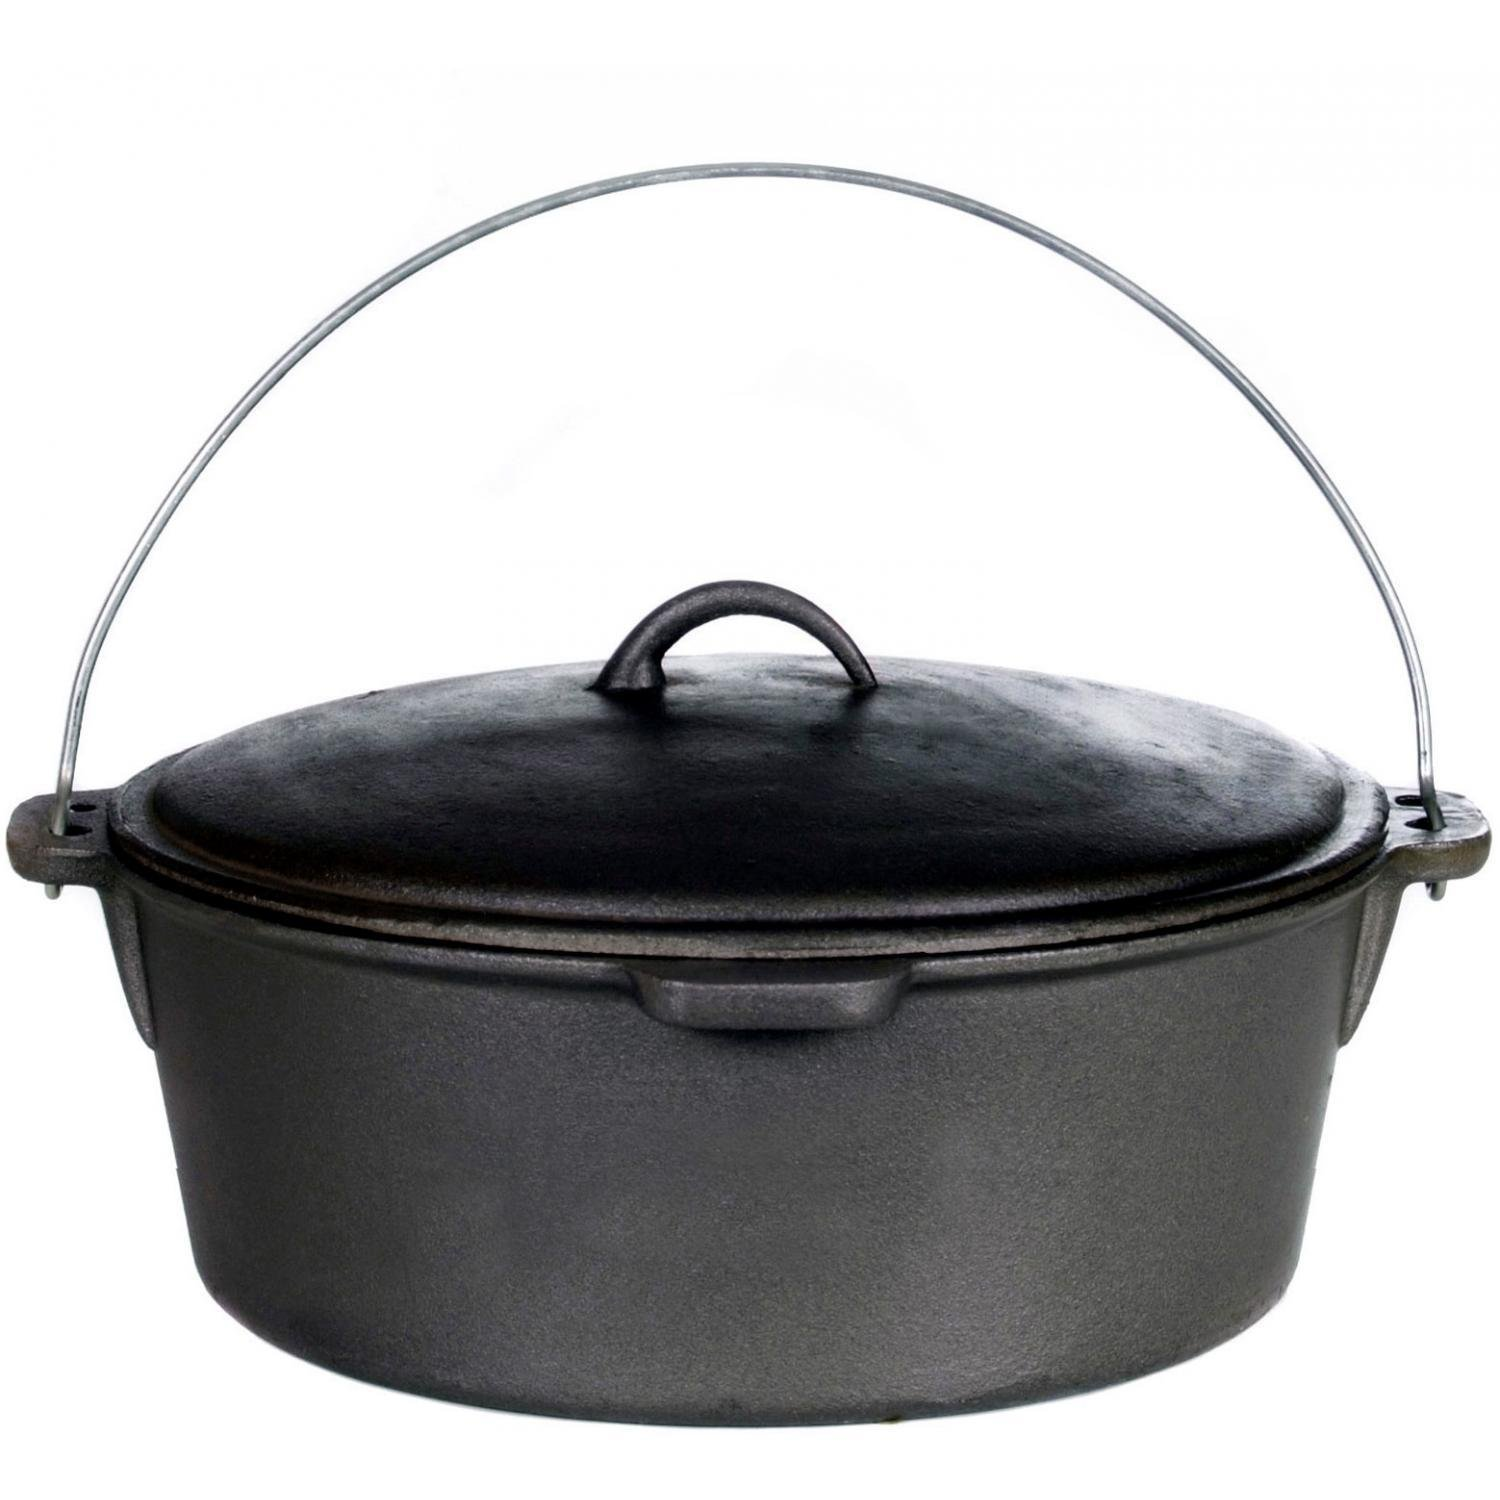 Cajun Cookware 20-quart Seasoned Cast Iron Dutch Oven - Gl10491s